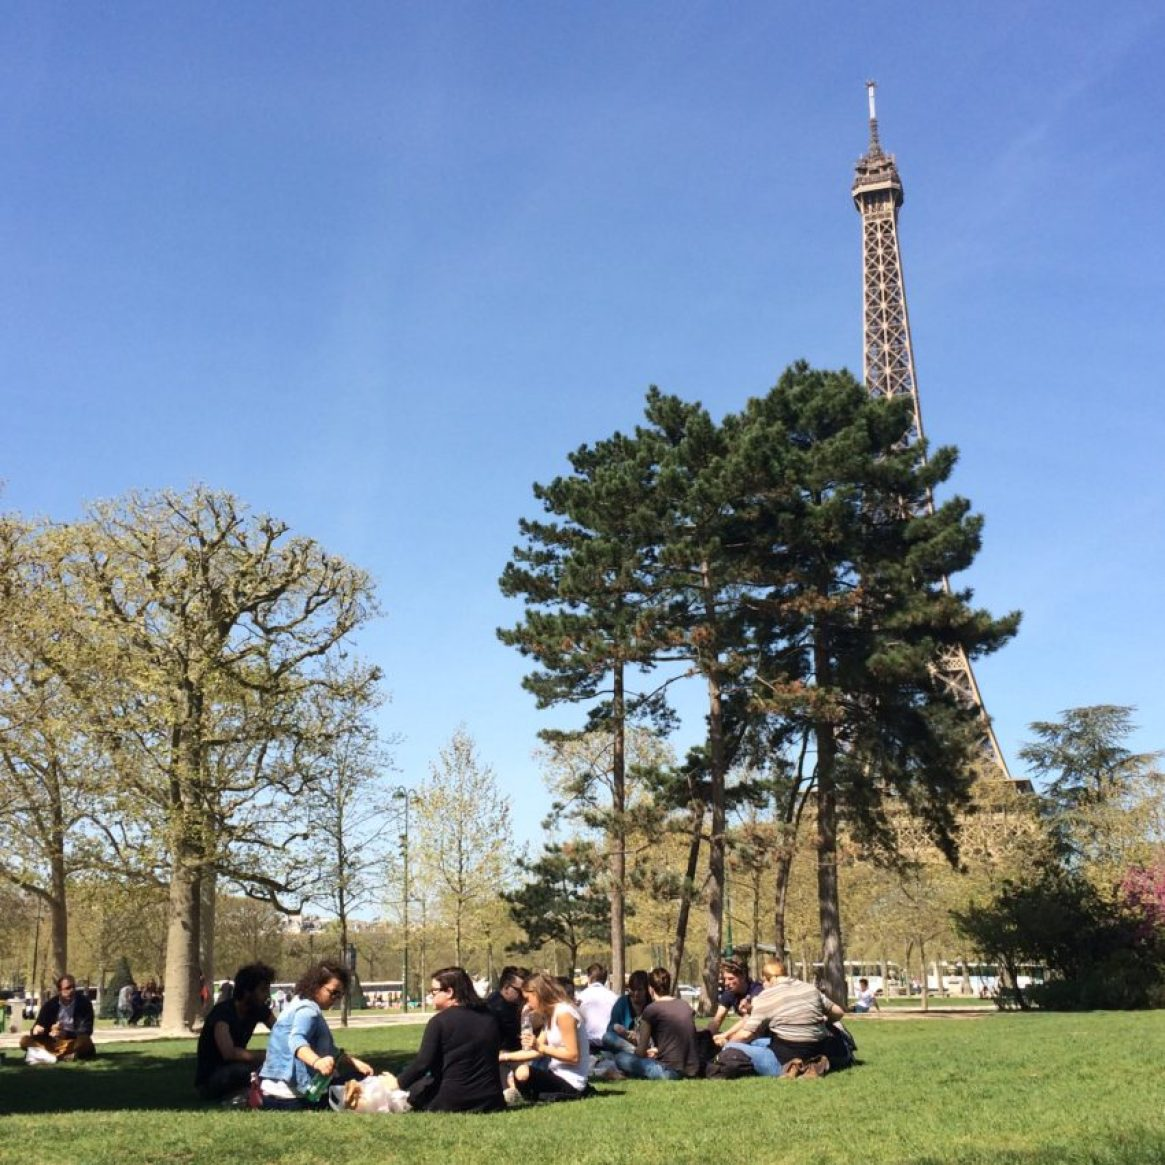 The Eiffel Tower attracts hordes of tourists but hungry French go there, too.